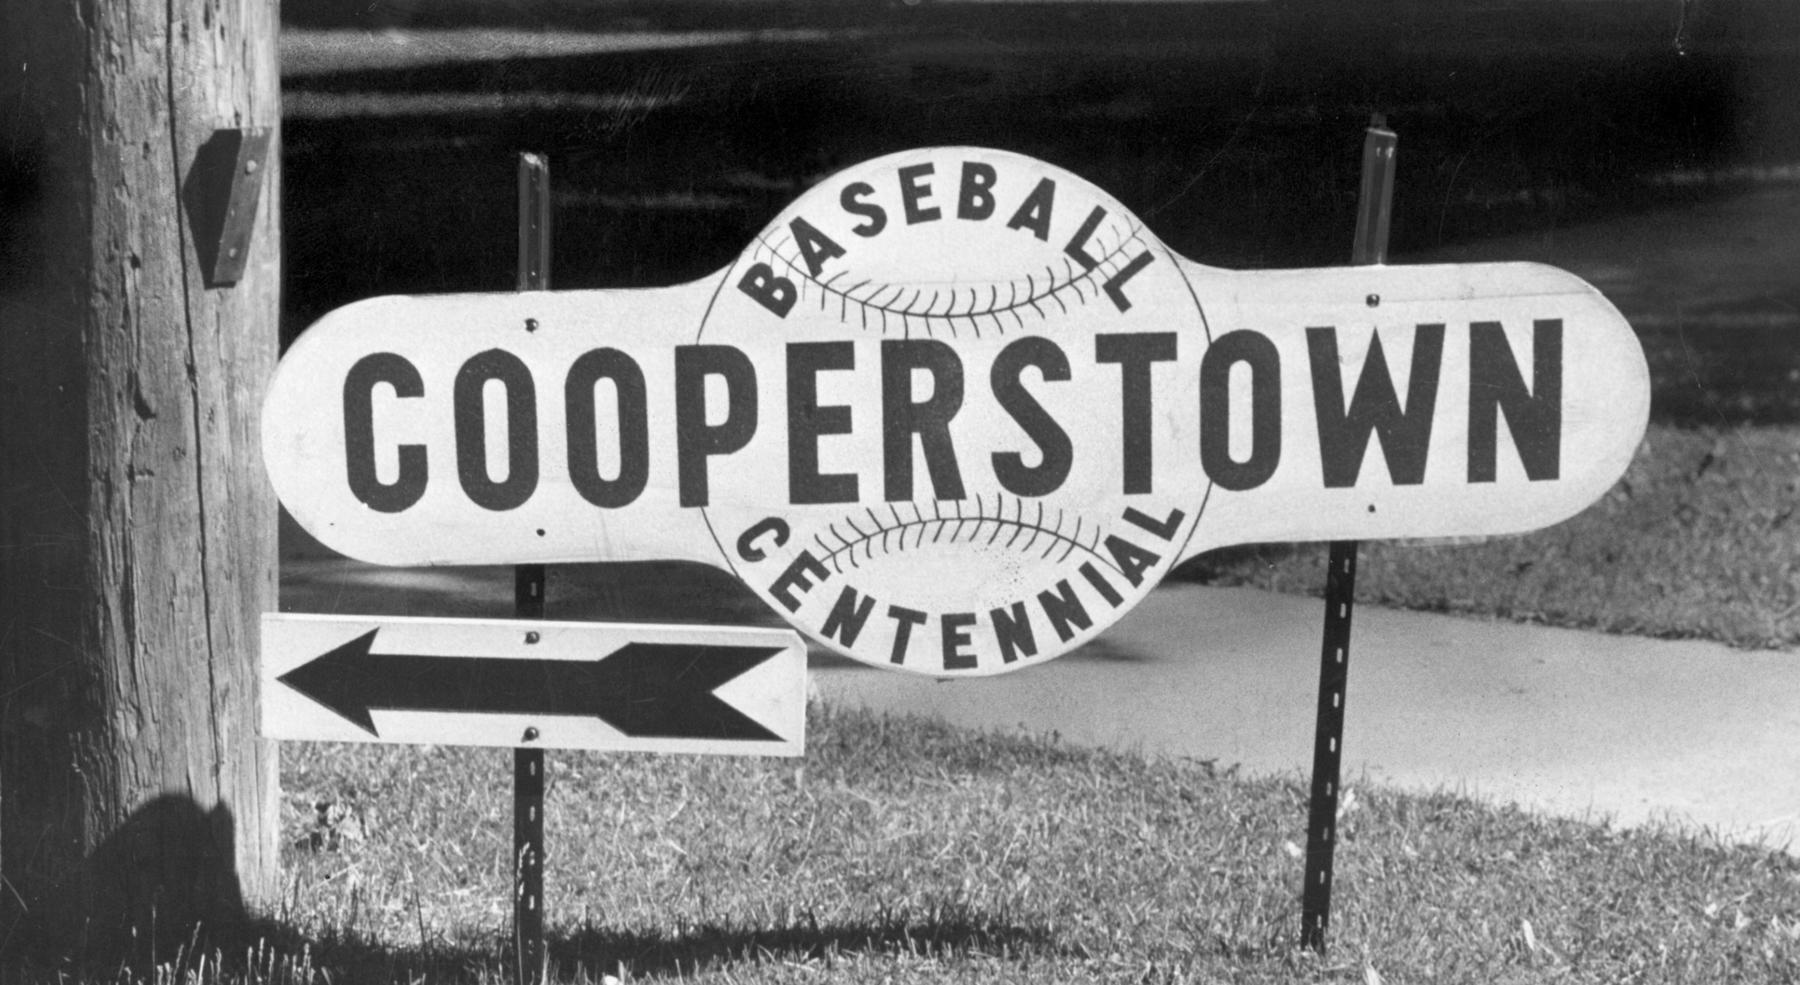 The center of the baseball world was Cooperstown, N.Y., on June 12, 1939, as the inaugural Hall of Fame induction ceremony was held. No games were held that day throughout Major League Baseball except for the exhibition contest held at Doubleday Field. (National Baseball Hall of Fame and Museum)